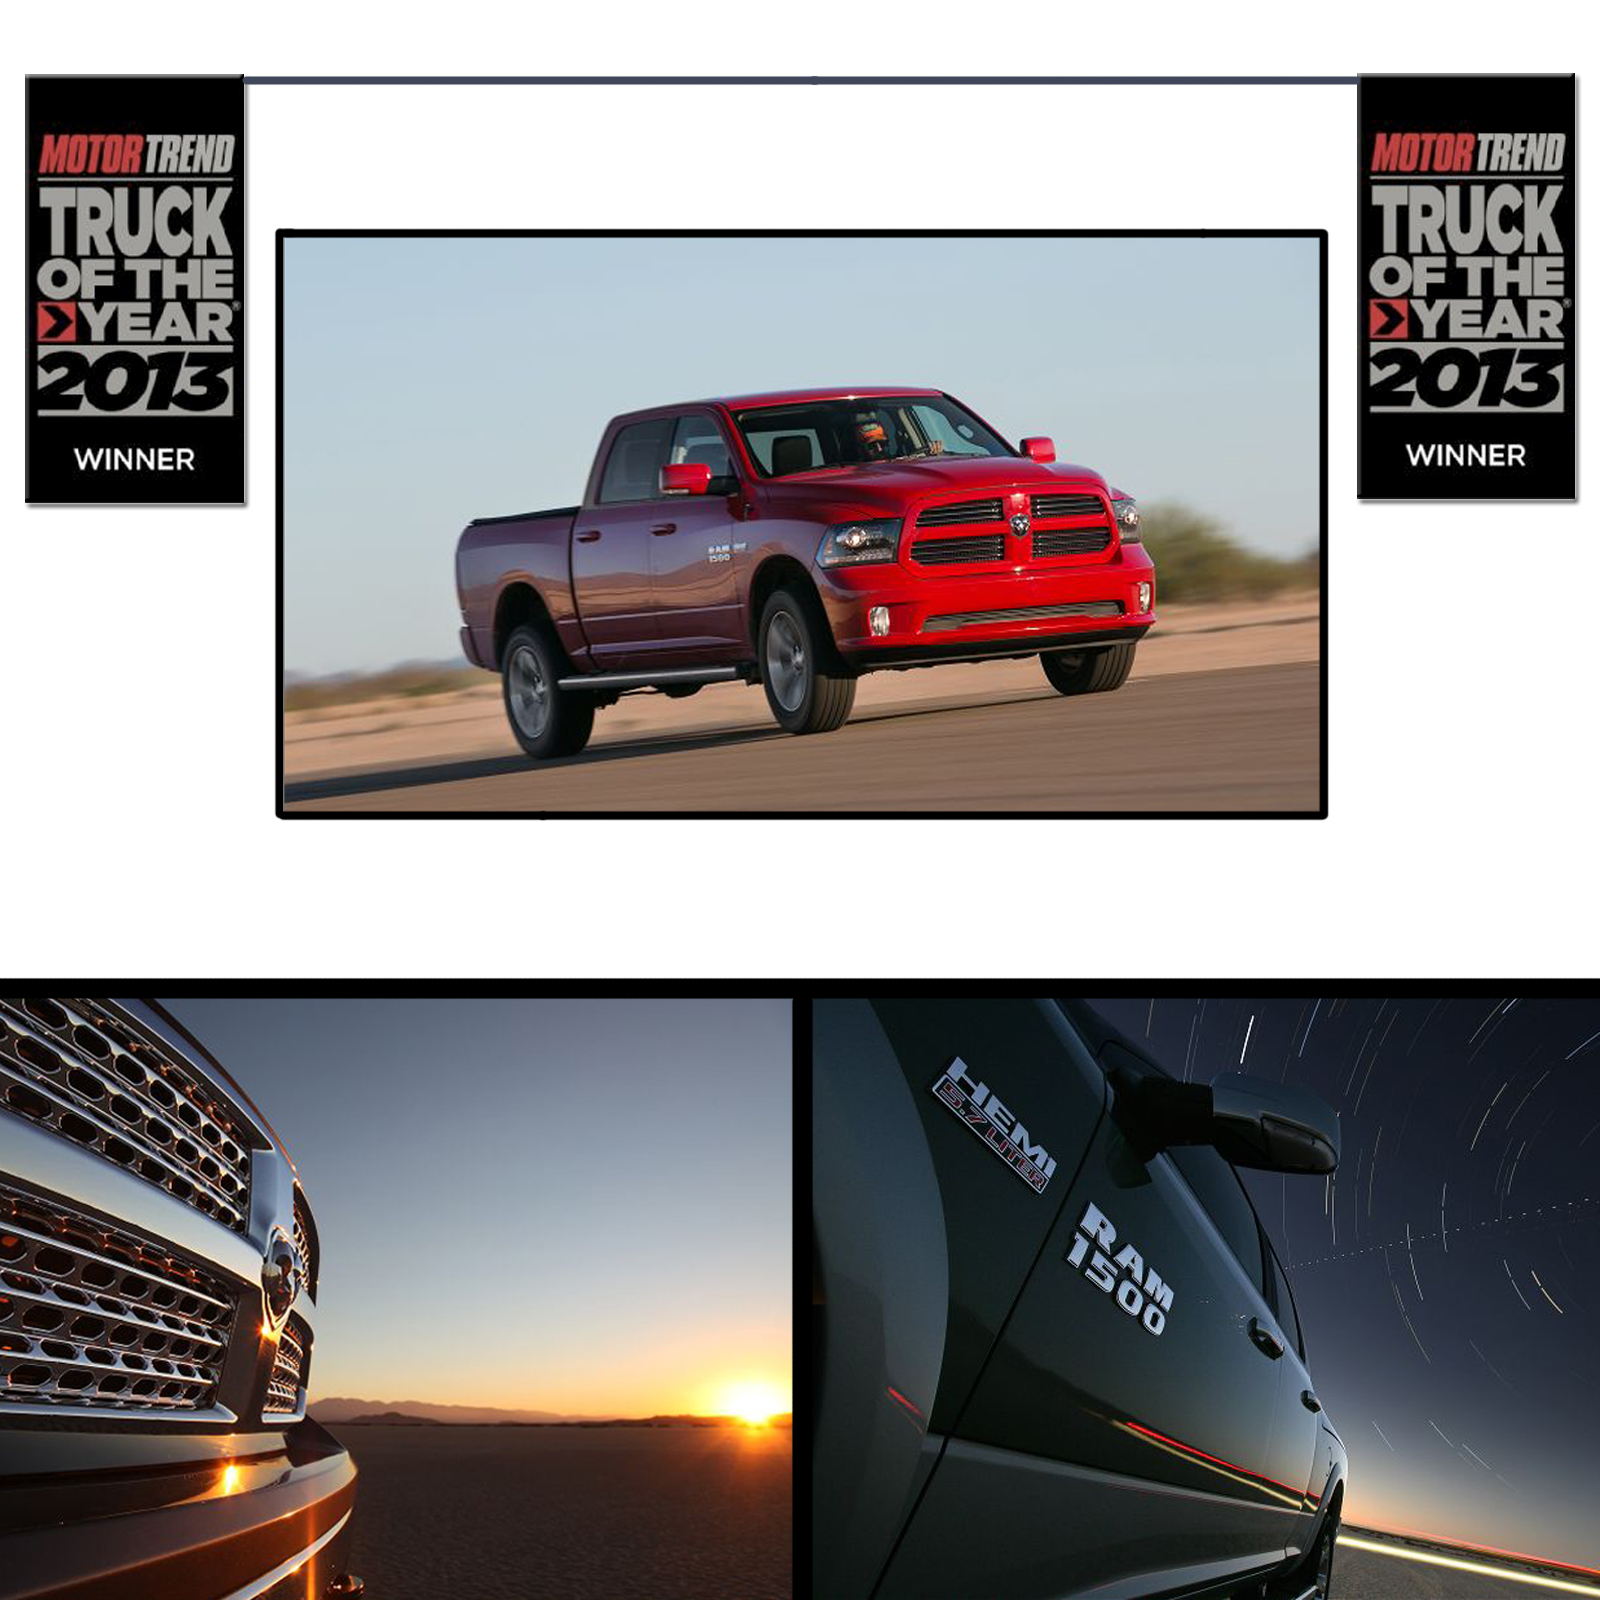 2012 motor trend heavy duty truck of the year